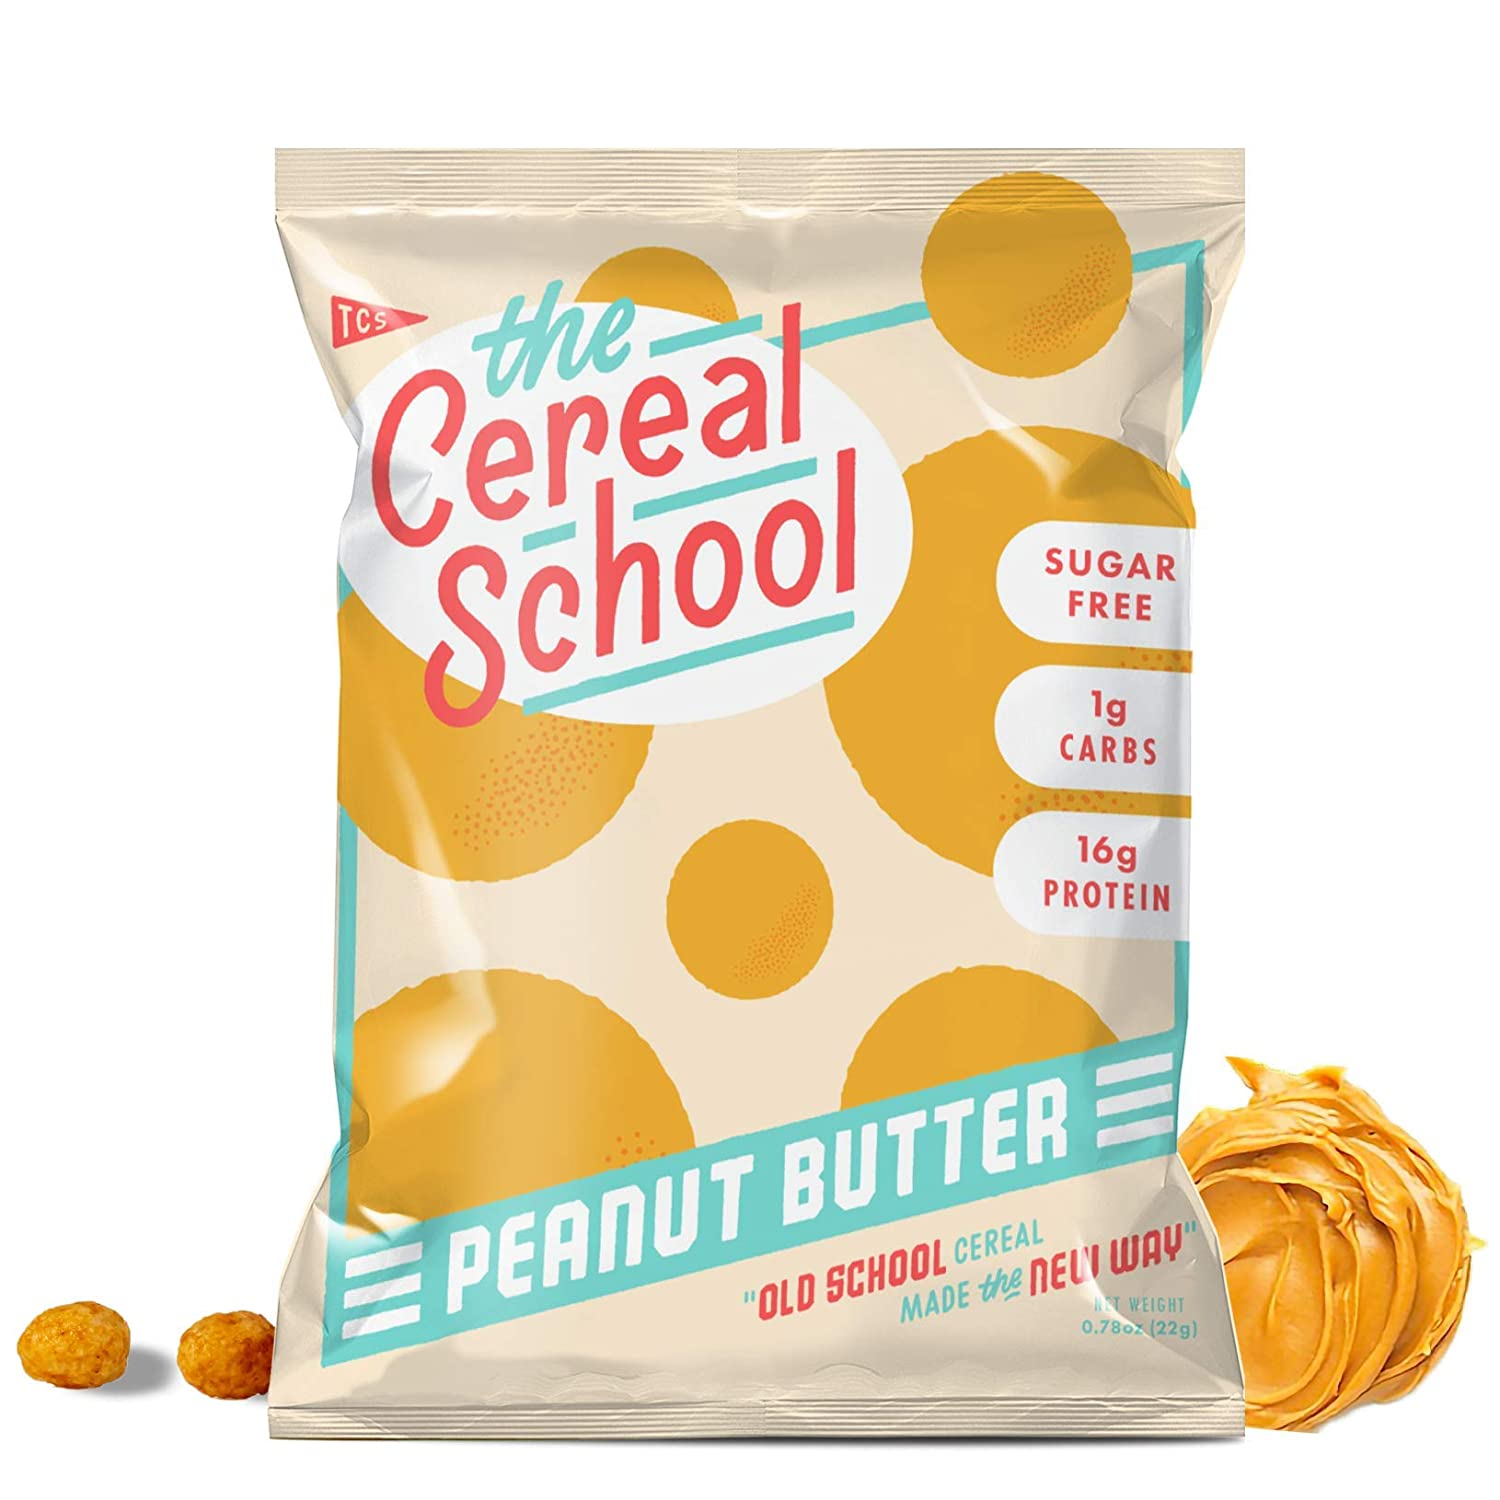 The Cereal School - Keto Cereal - Gluten Free - Sugar Free - Grain Free - Low Carb (Net 1g) - High Protein (16g) - Keto Approved Ingredients - Keto Friendly Snack - Peanut Butter - 12 Bags